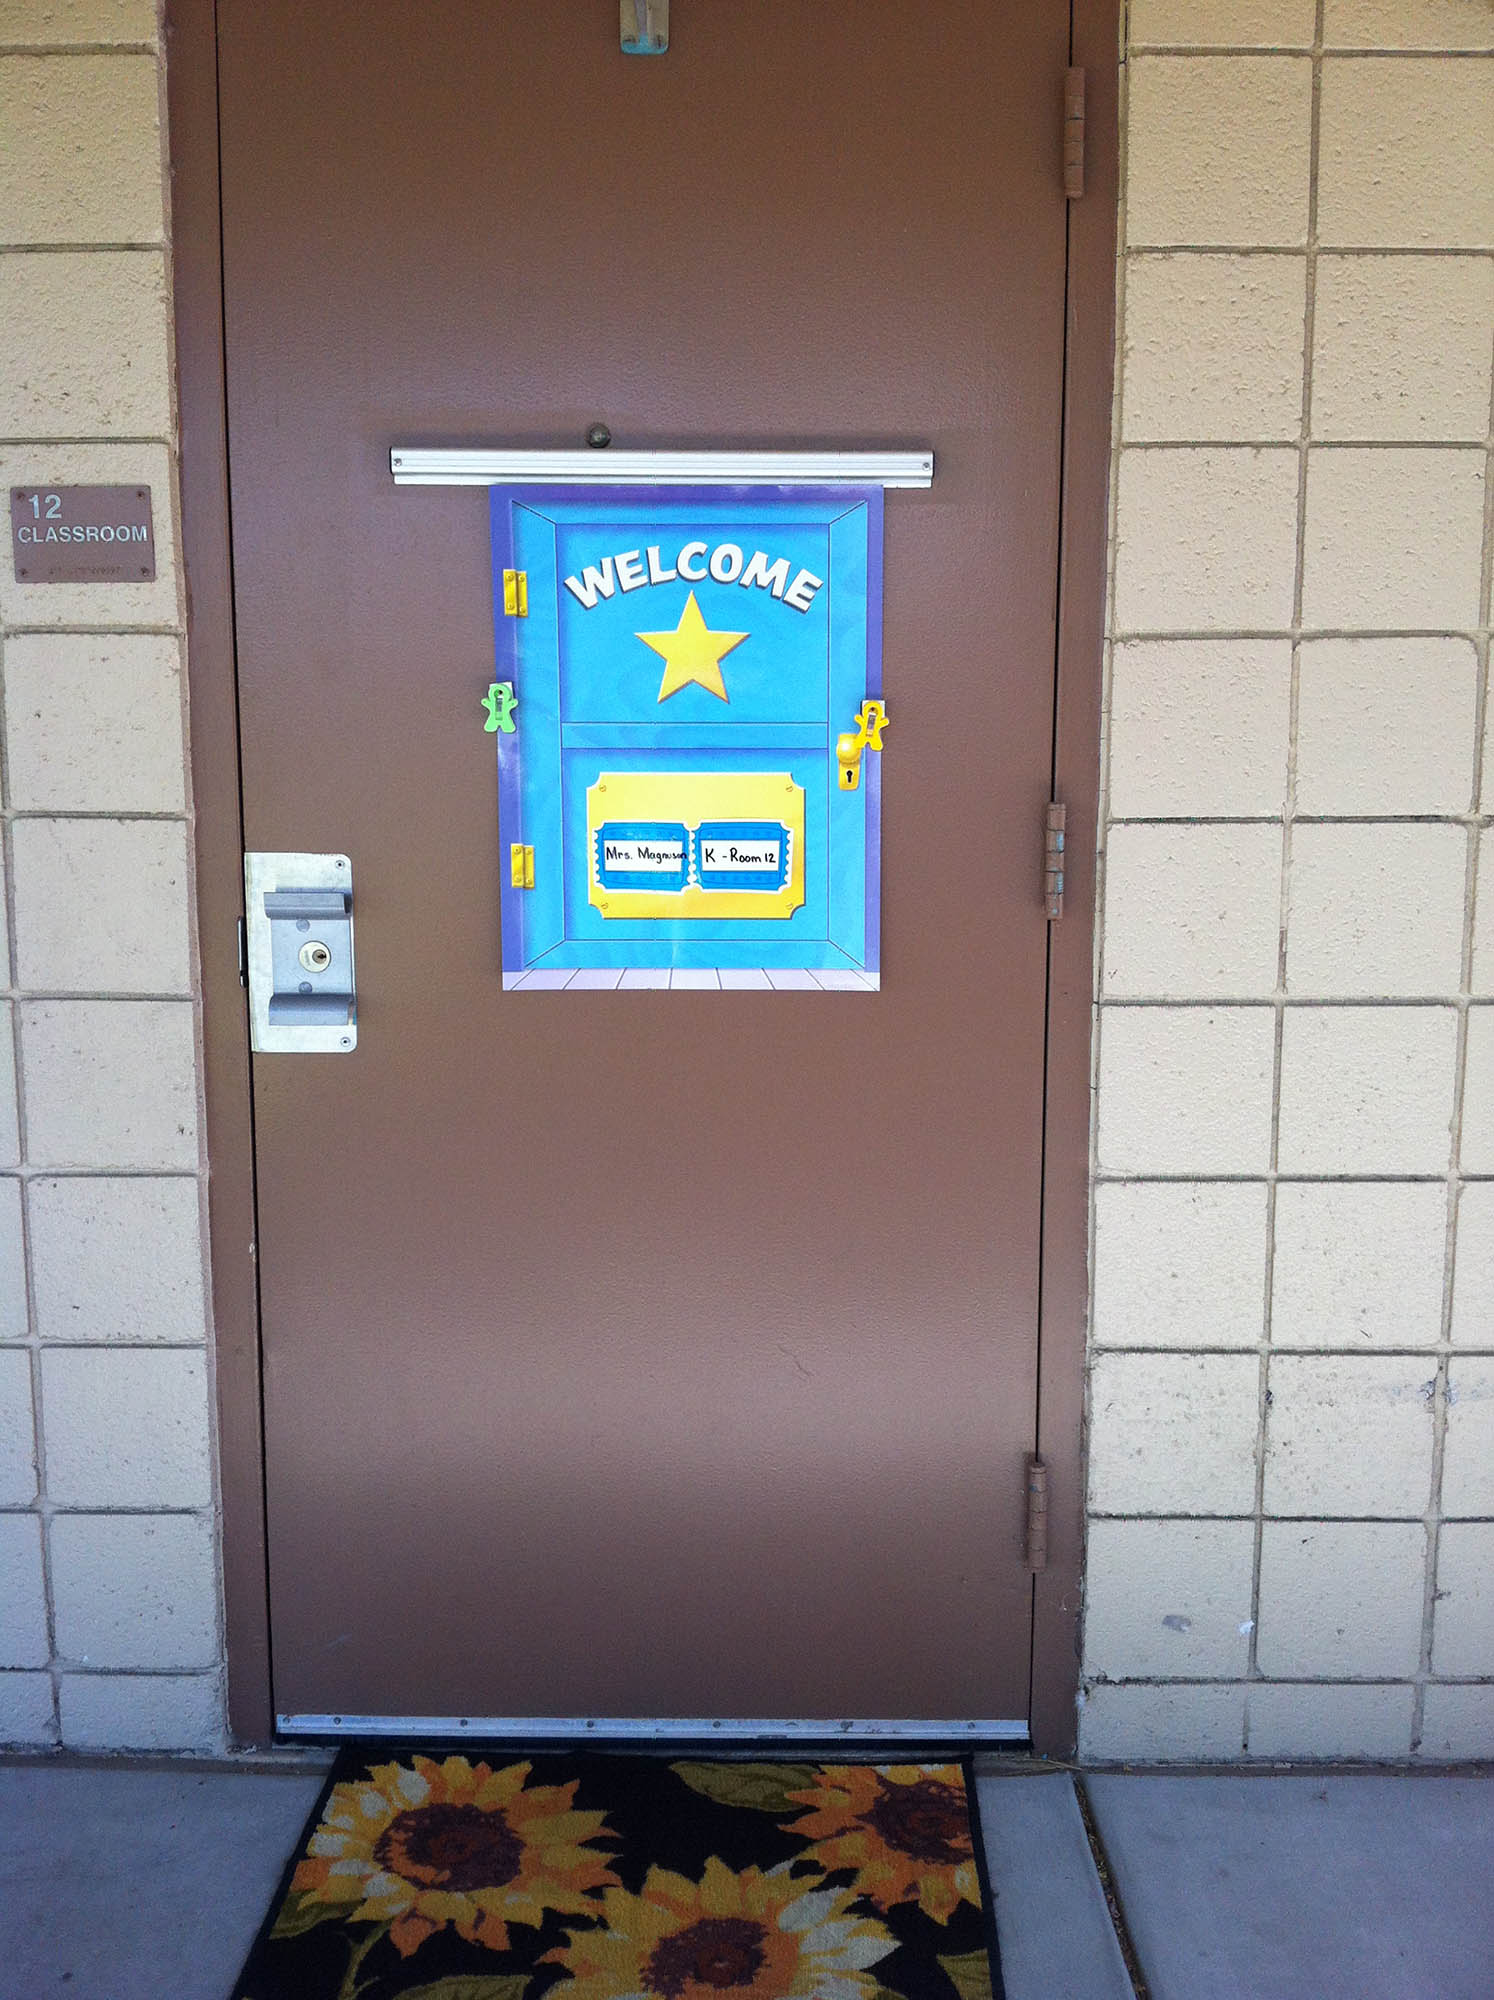 Classroom Visitor Ideas ~ Classroom decorating tips for the frugal teacher scholastic